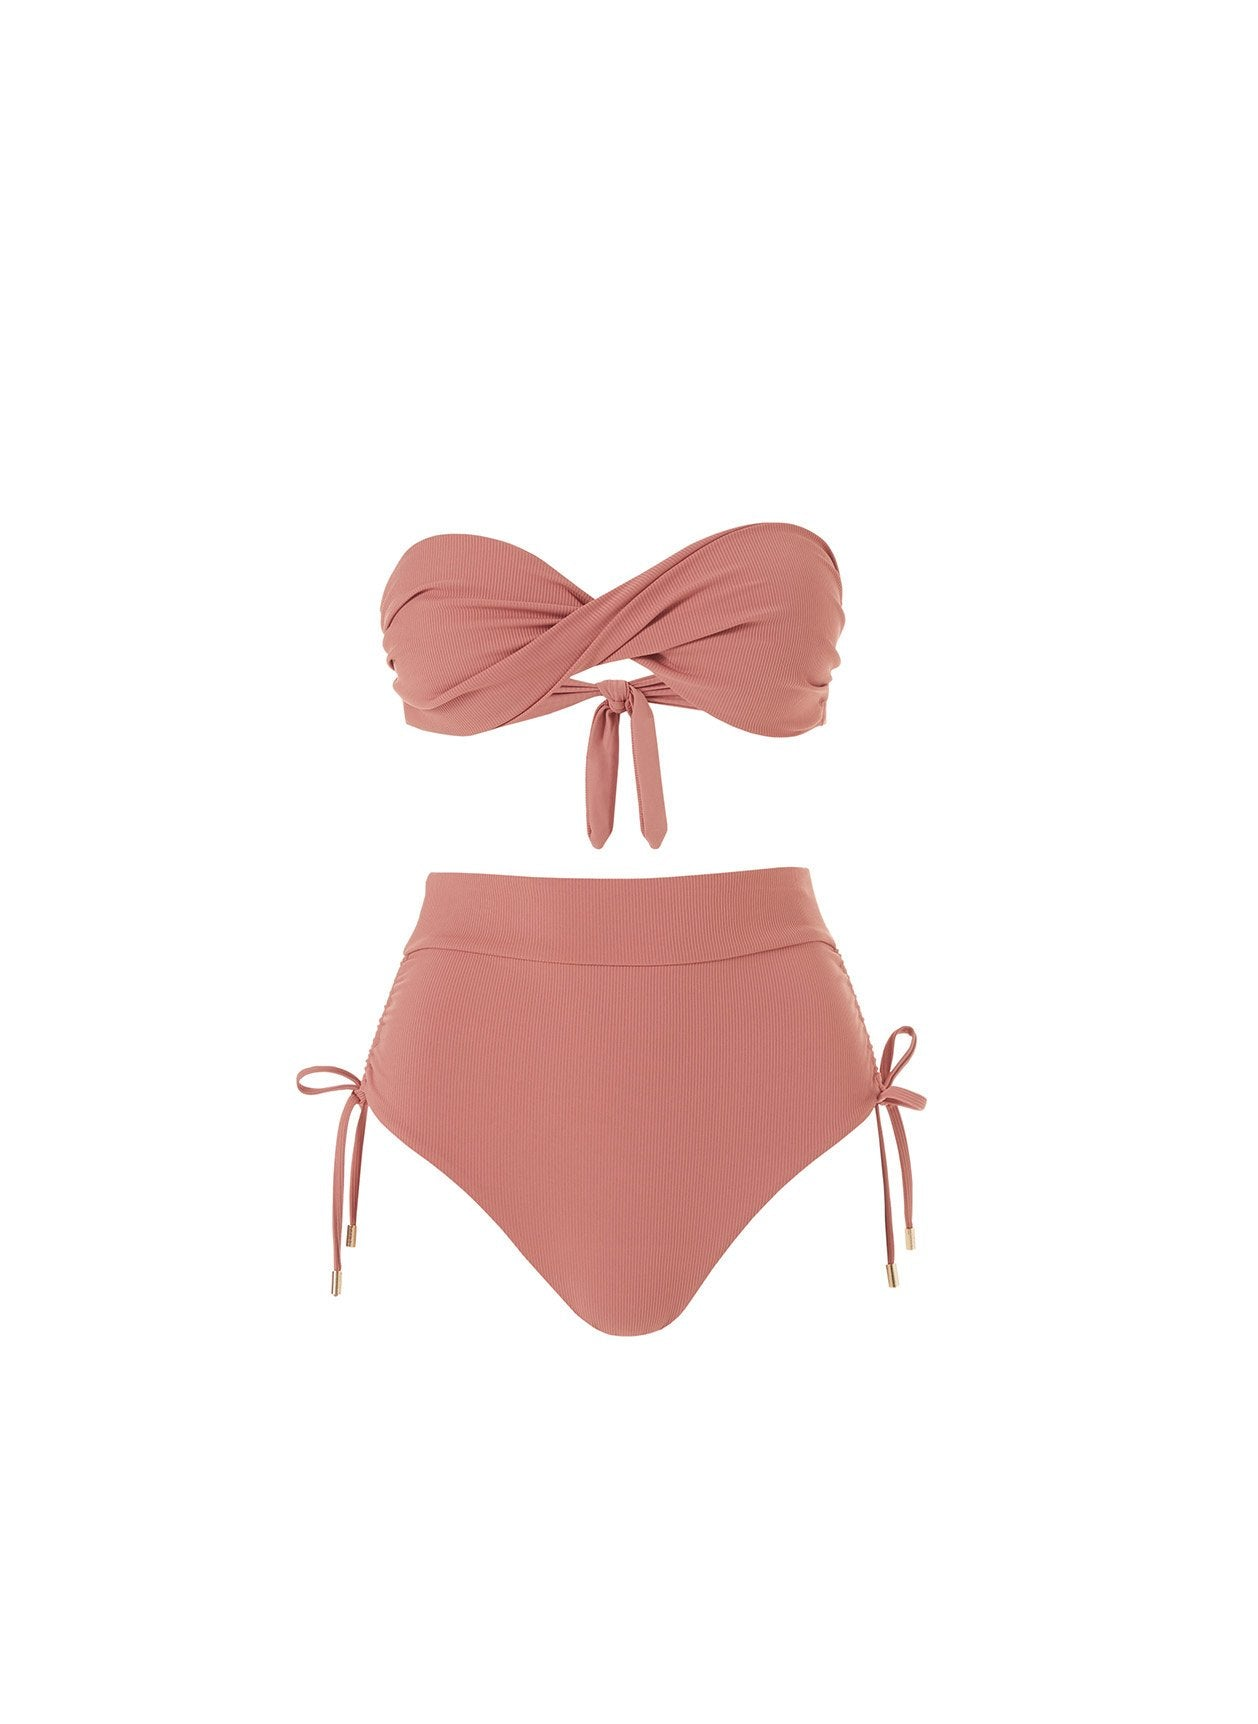 Thailand Dusty Rose Ribbed Rouched High Waisted Bandeau Bikini 2020